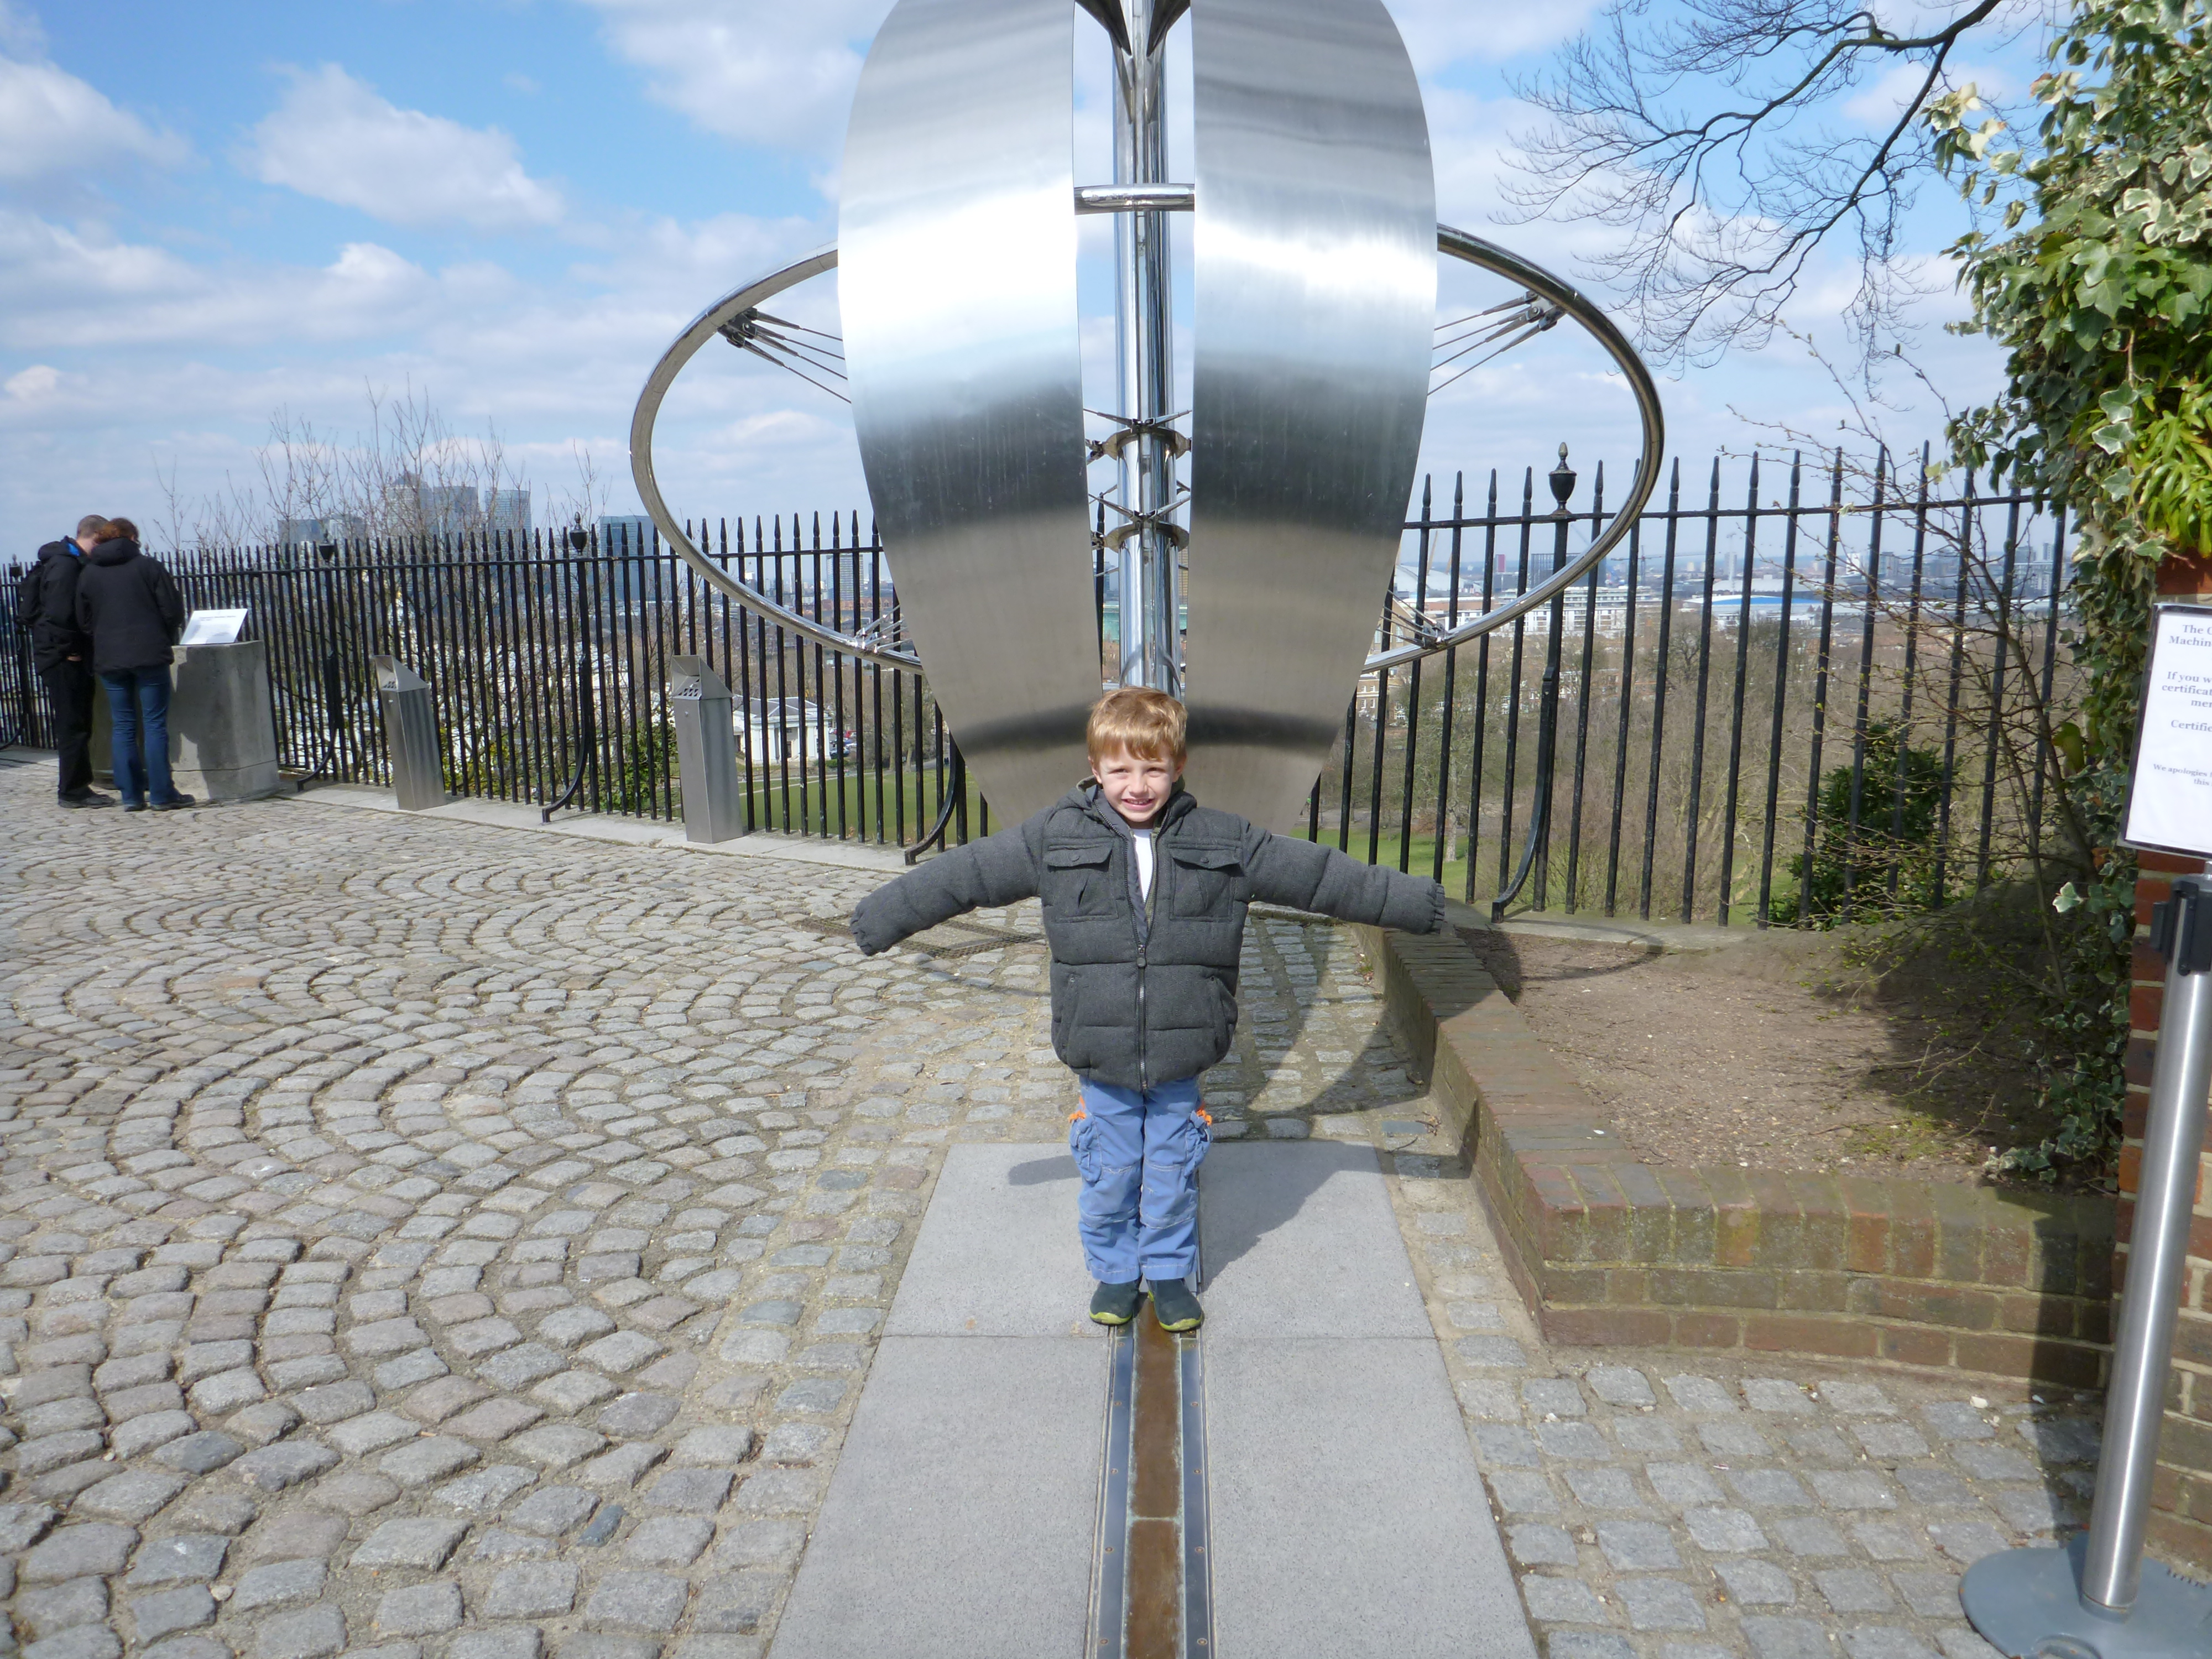 06 prime meridian t | Real Mom Time (RMT)